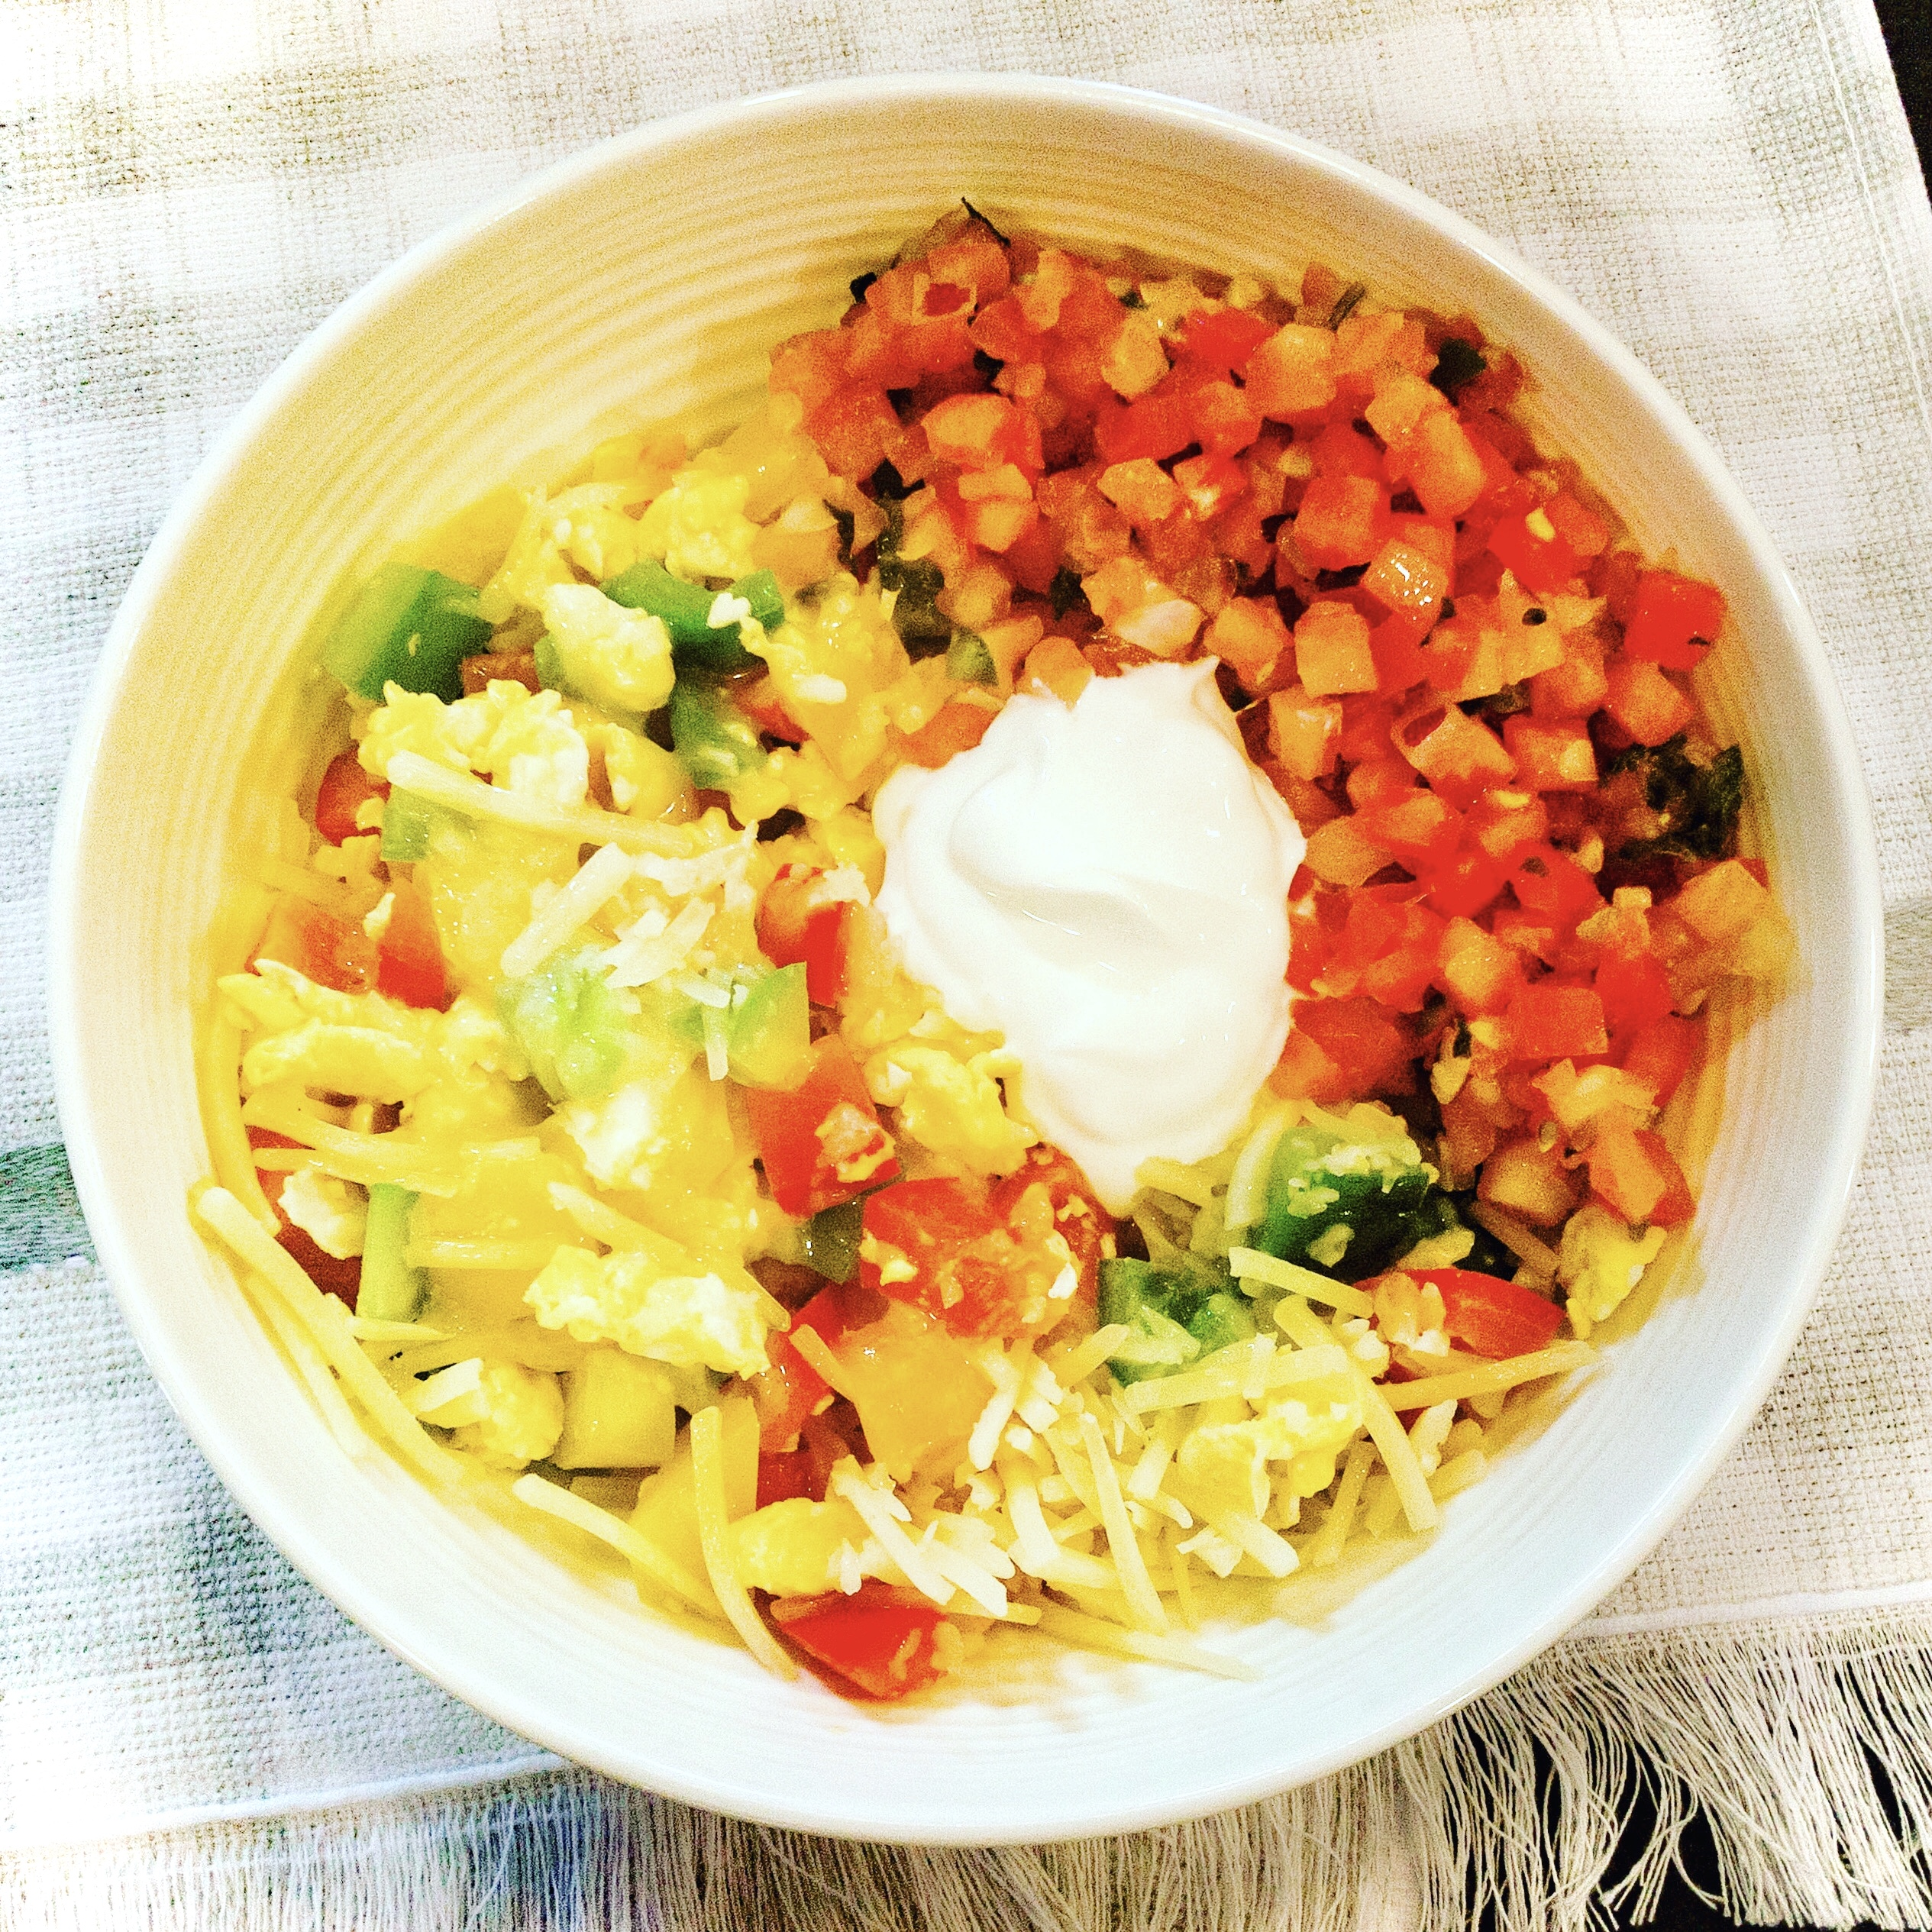 bowl of scrambled eggs, peppers, onions, pico, melting shredded cheese, and sour cream